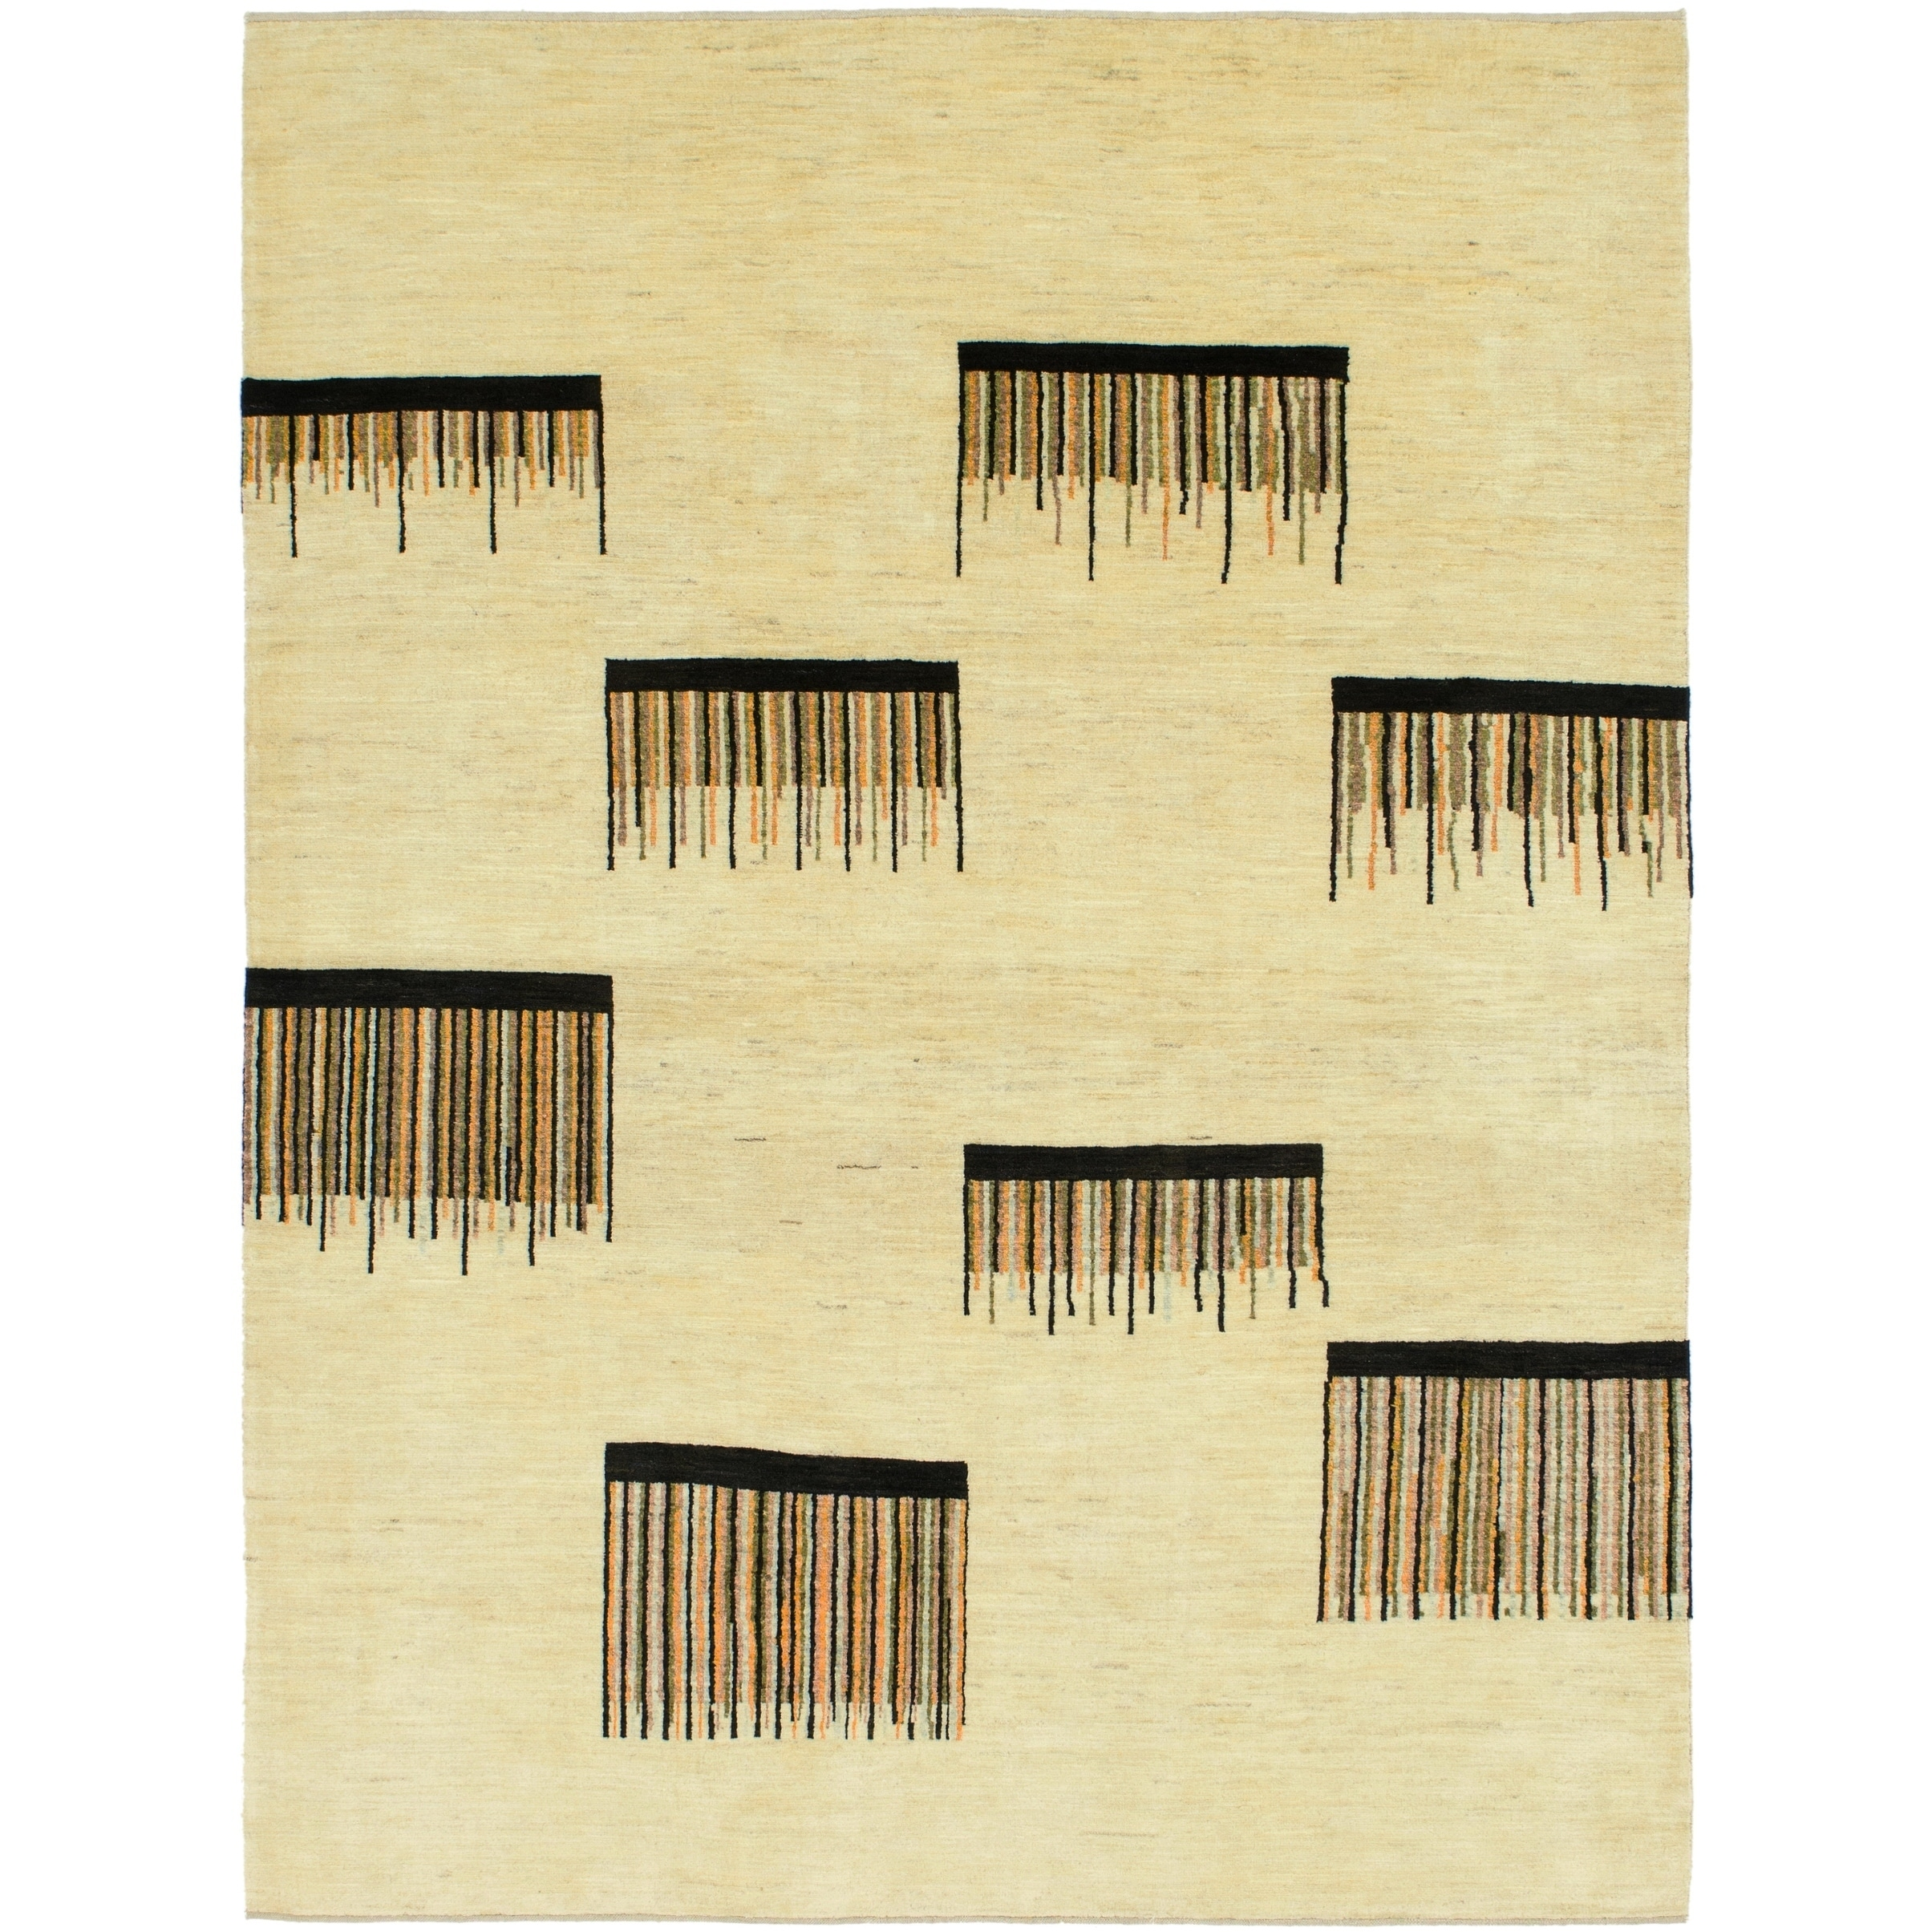 Hand Knotted Kashkuli Gabbeh Wool Area Rug - 7 x 9 3 (Cream - 7 x 9 3)